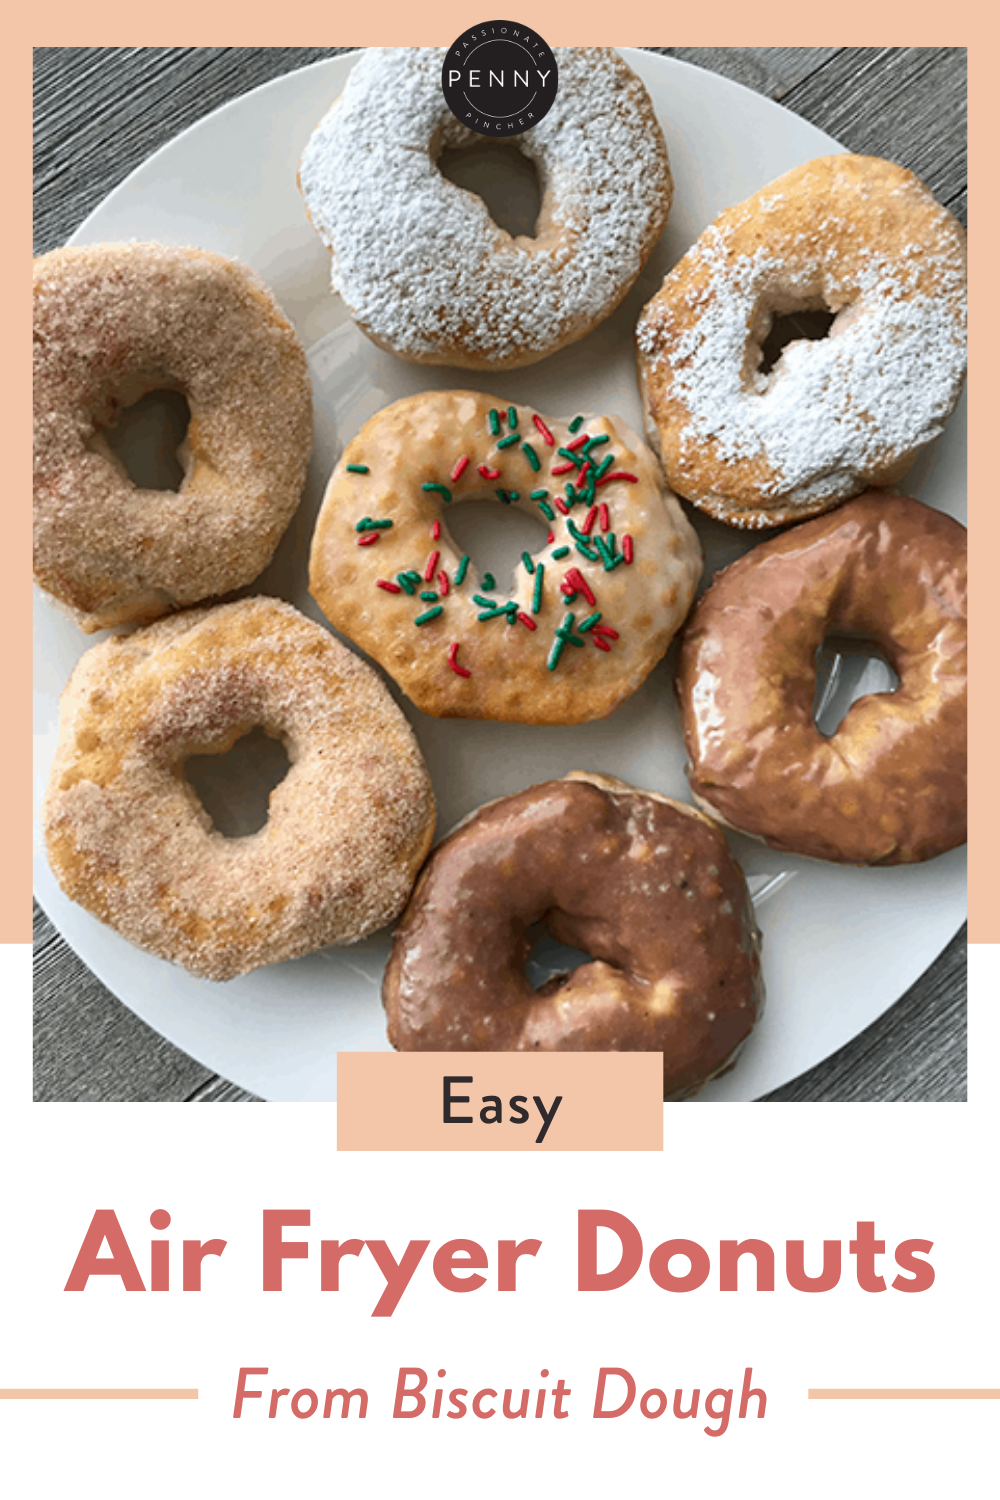 EASY Air Fryer Donuts from Biscuit Dough! (4 Kinds) in